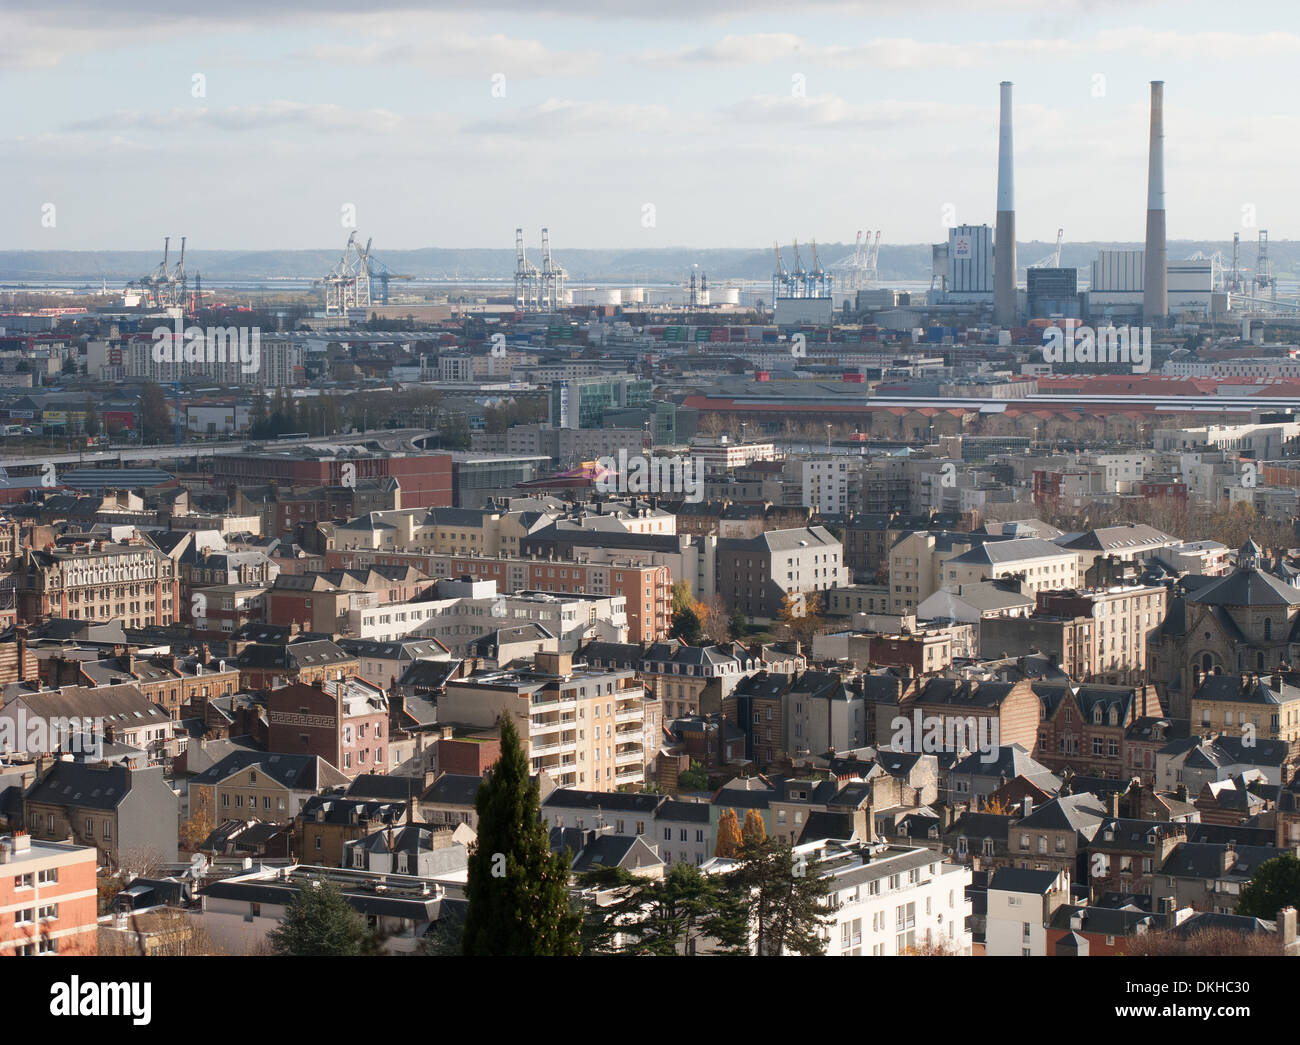 NORMANDY, FRANCE. A view over the city of Le Havre, with the industrialised Seine estuary in the distance. 2013. - Stock Image